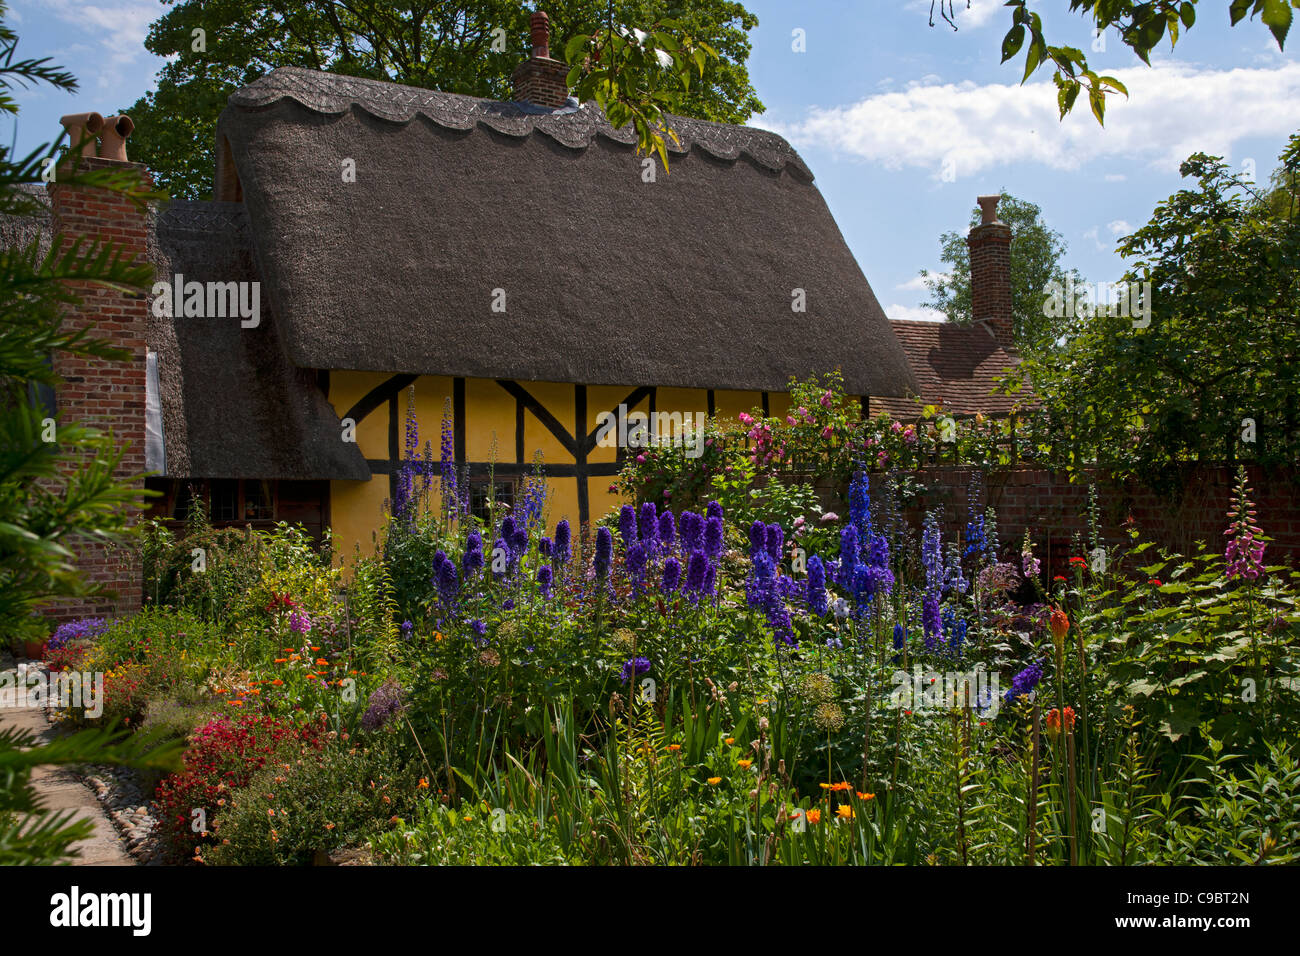 Groovy Classic Summer English Cottage Garden With Herbaceous Border Download Free Architecture Designs Viewormadebymaigaardcom